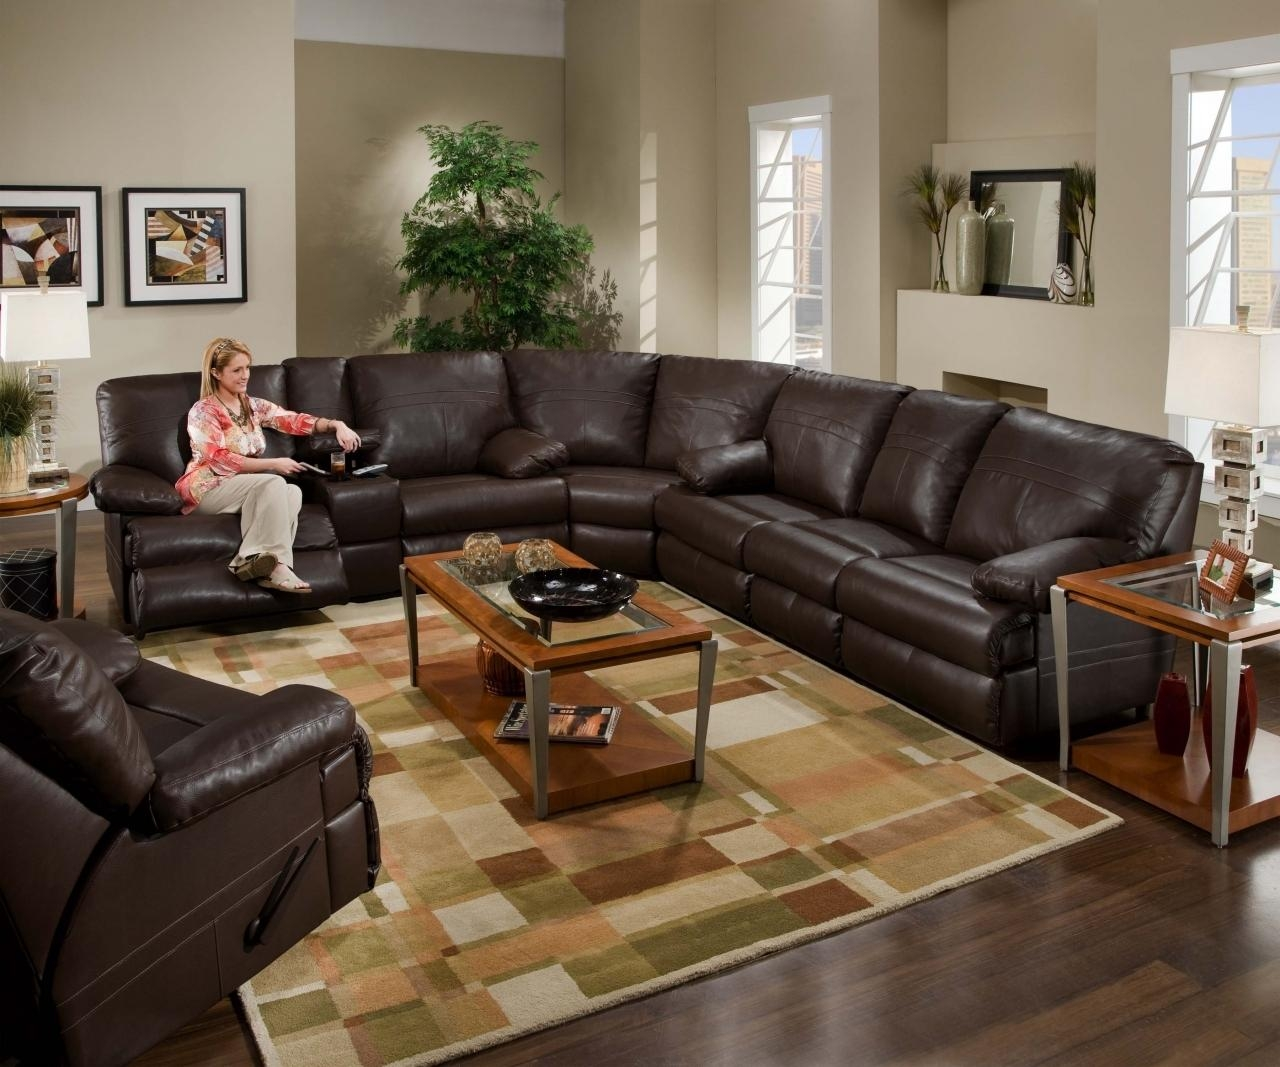 20 best ideas large leather sectional sofa ideas. Black Bedroom Furniture Sets. Home Design Ideas